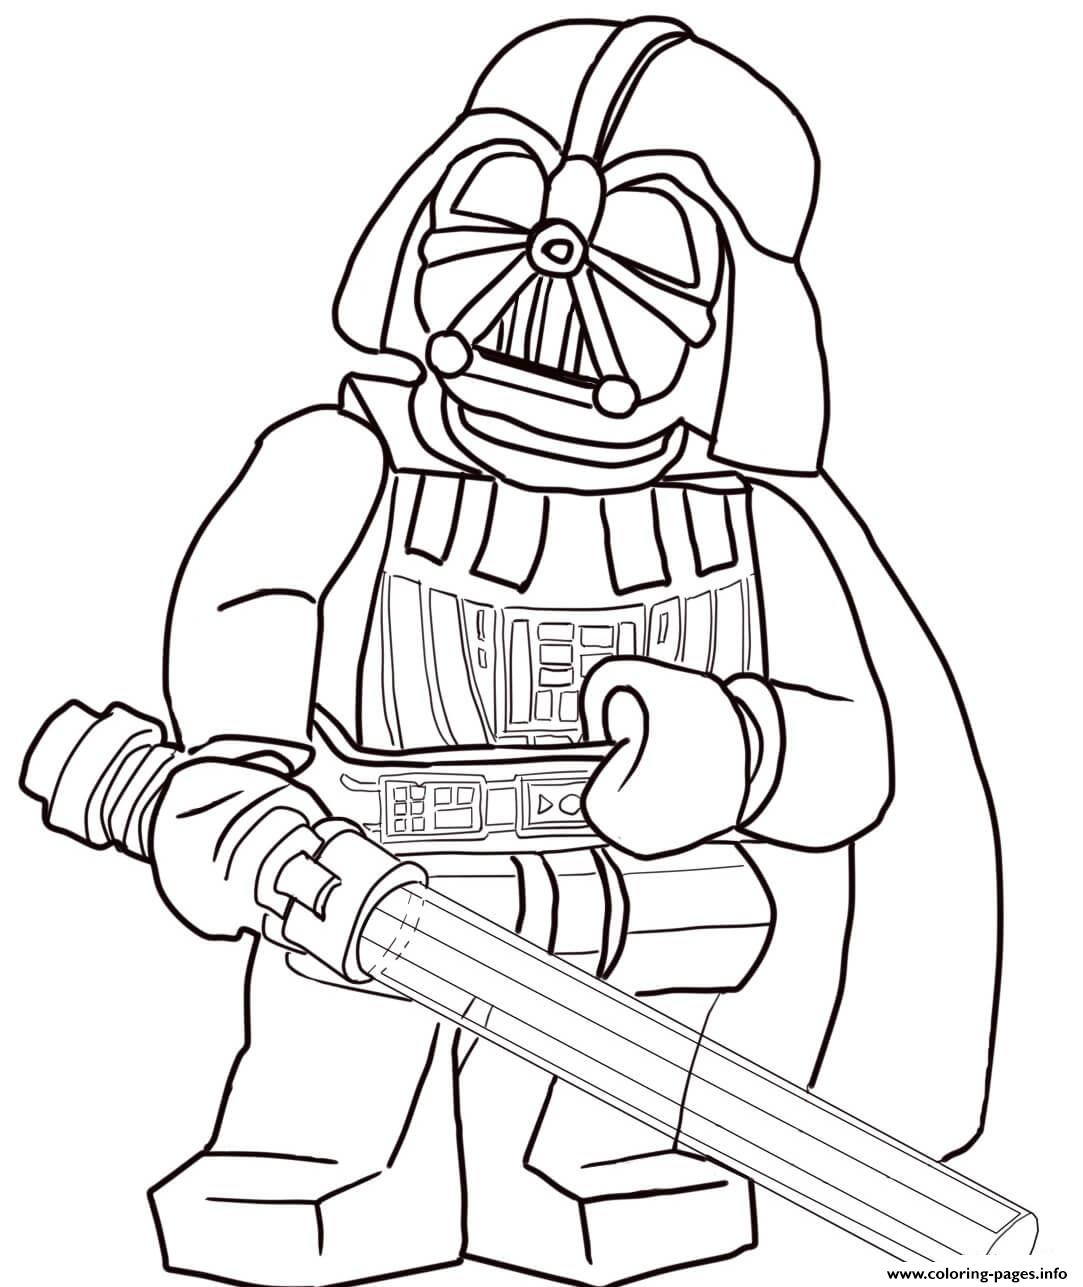 Lego Star Wars Darth Vader Coloring Pages Printable